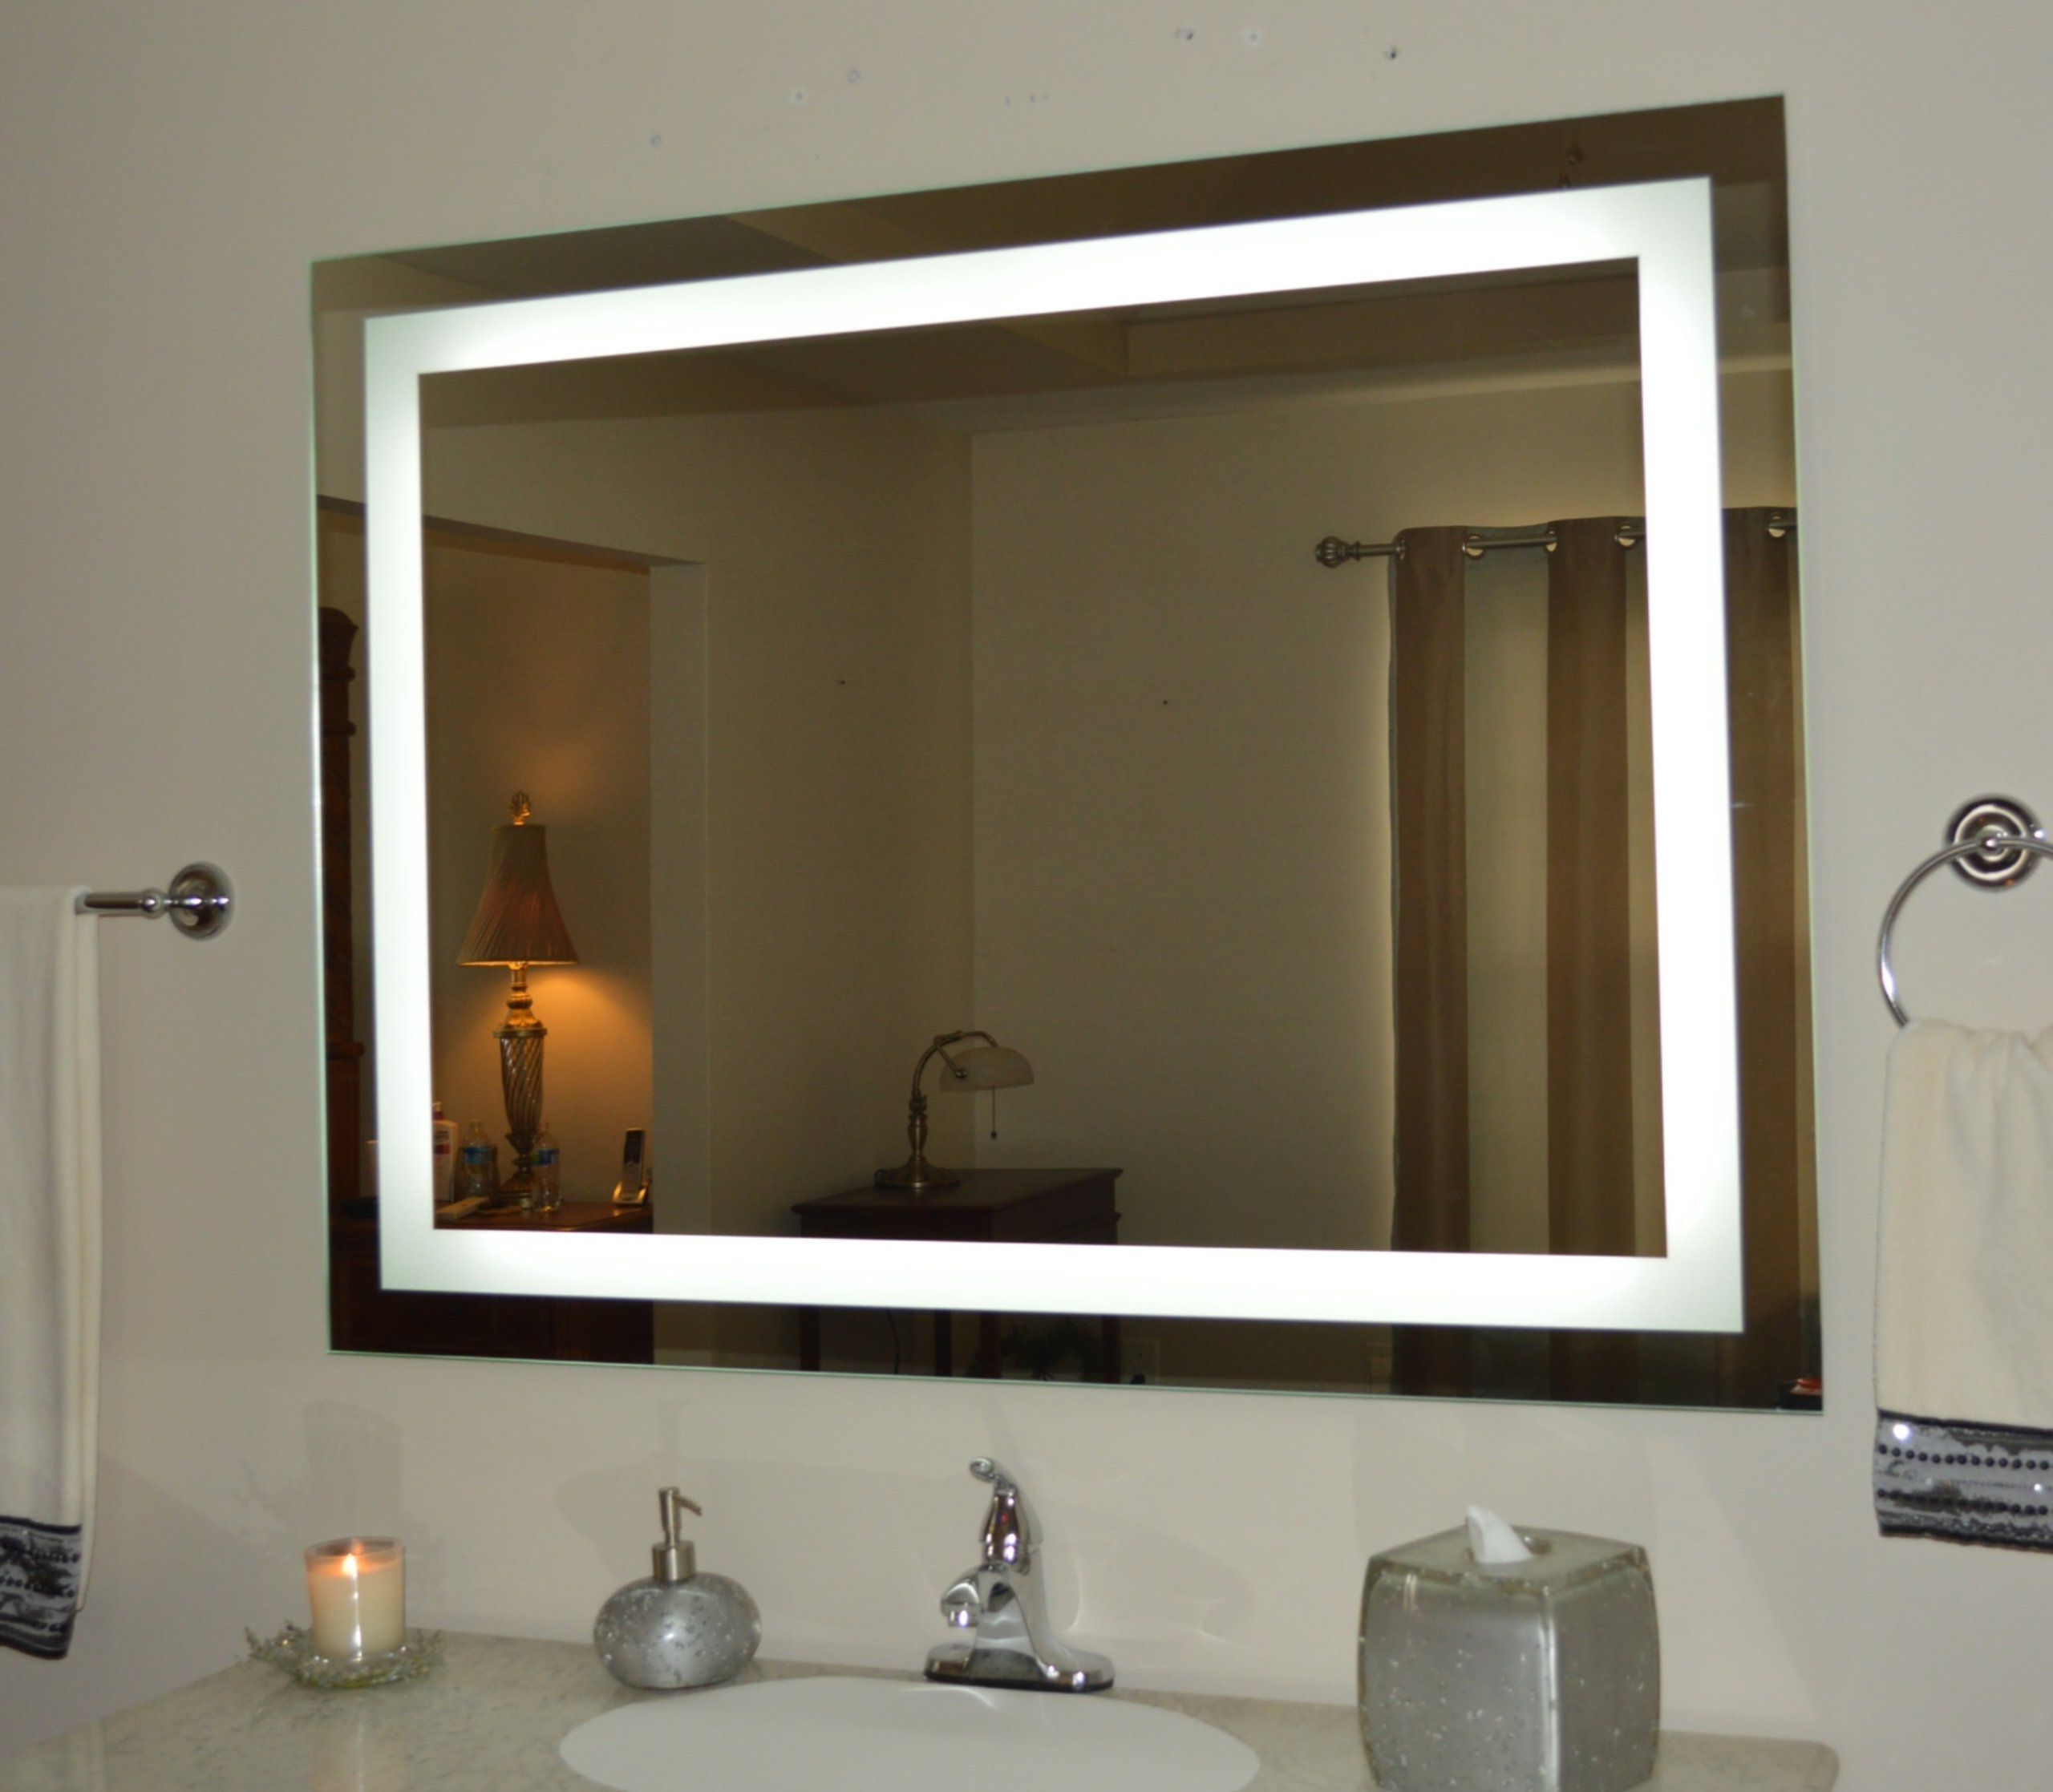 Famous Wall Mounted Lighted Vanity Mirror Led Mam84836 Commercial Grade 48 Inside Light Up Wall Mirrors (View 4 of 20)